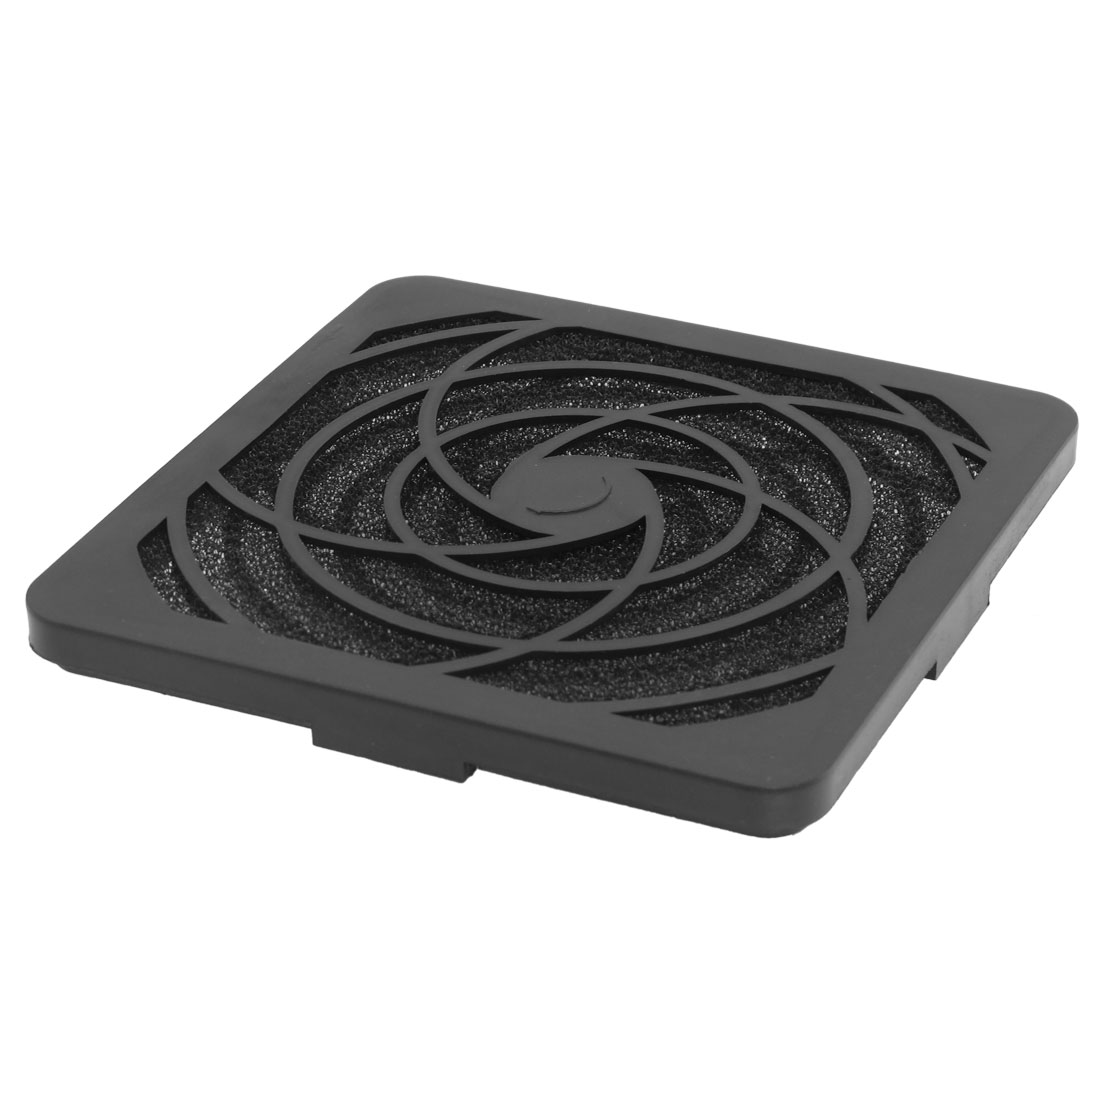 Black Plastic Square Dustproof Filter 105mm PC Case Fan Dust Guard Mesh